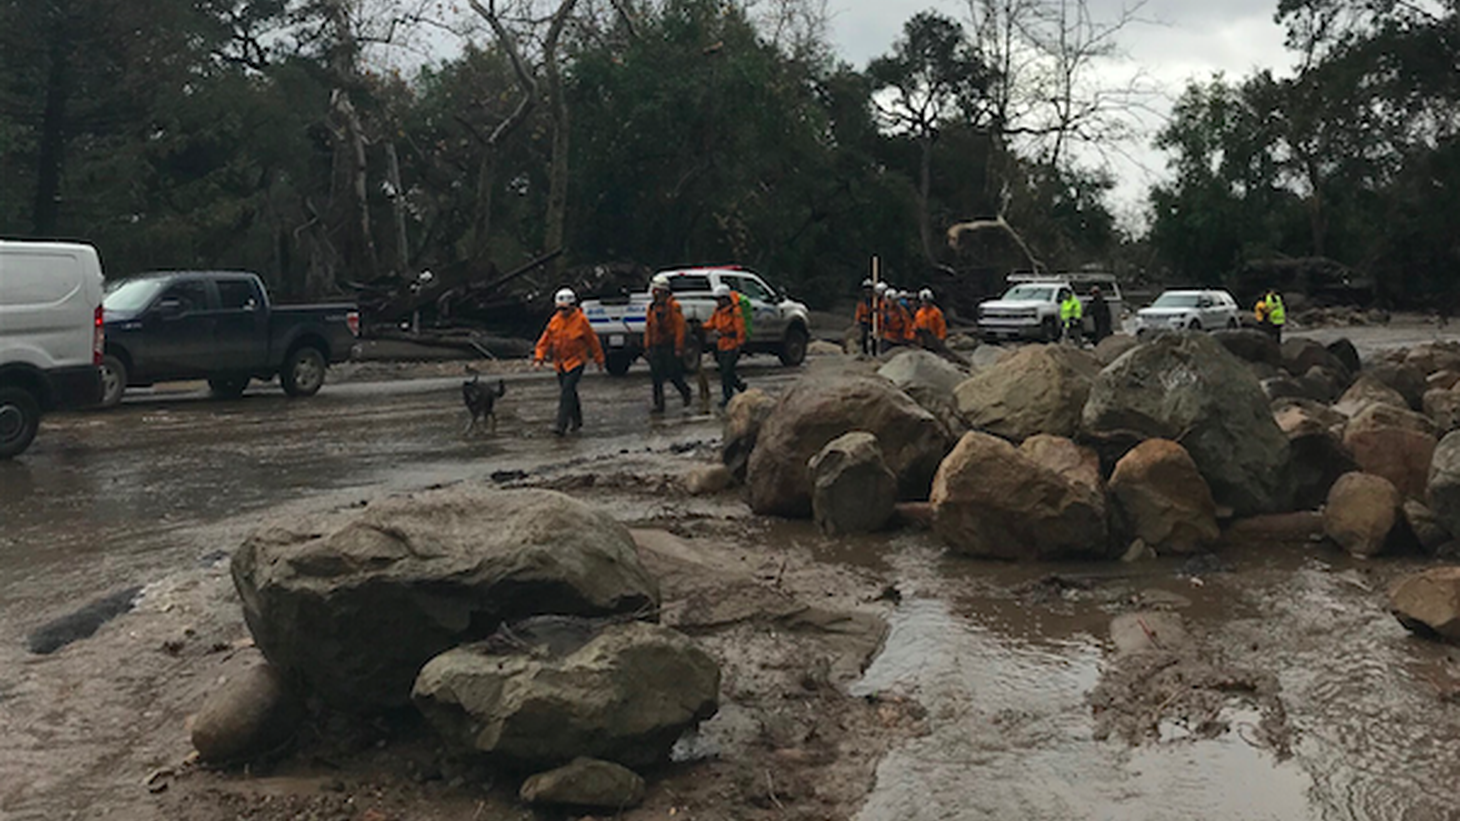 Heavy rains and mudslides near Santa Barbara have become deadly. Several people have died and more are trapped in their homes. A 30-mile stretch of the 101 freeway from Ventura to Santa Barbara is closed due to mud.